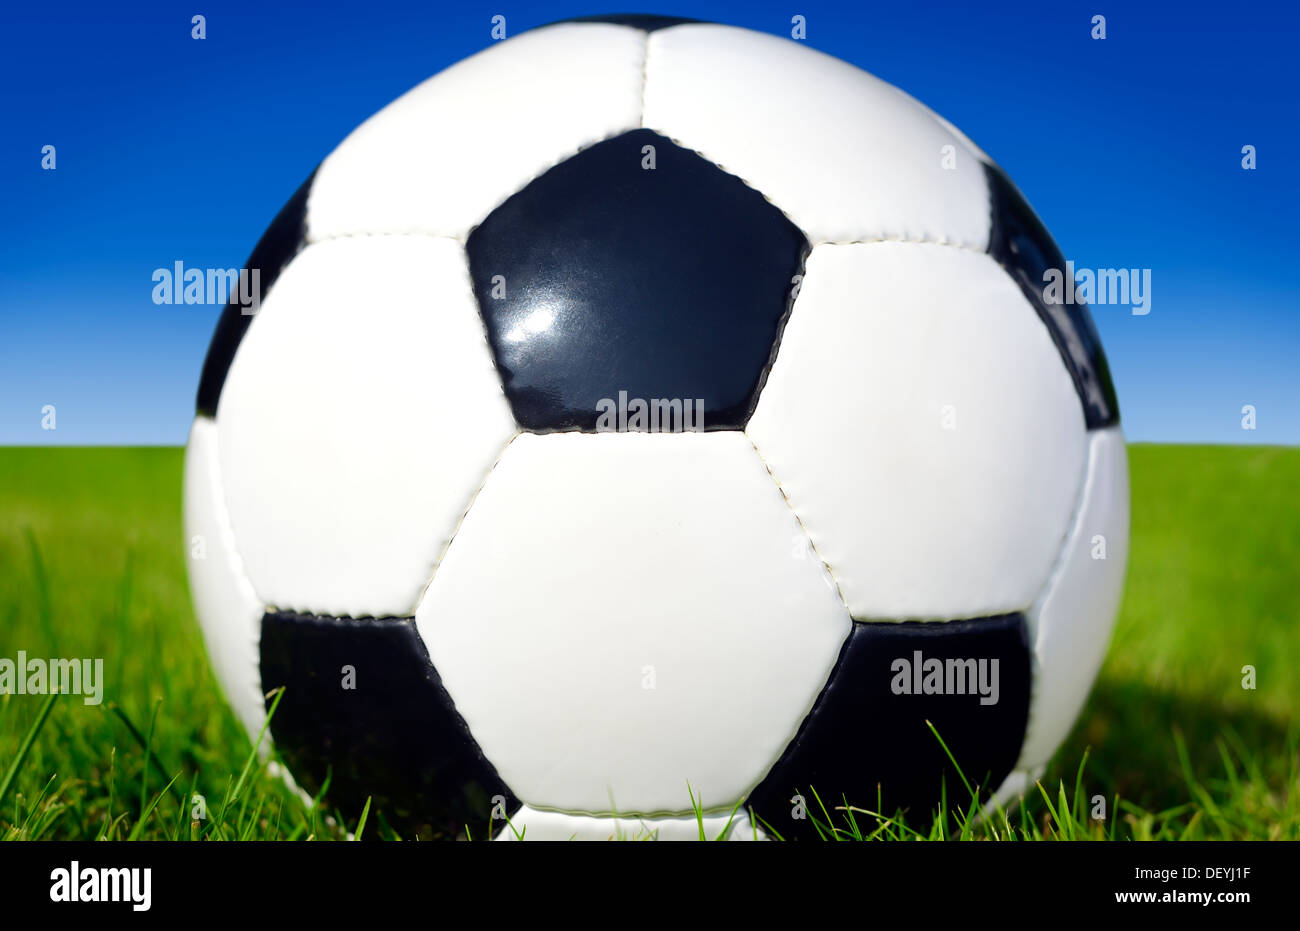 Football, Fußball - Stock Image